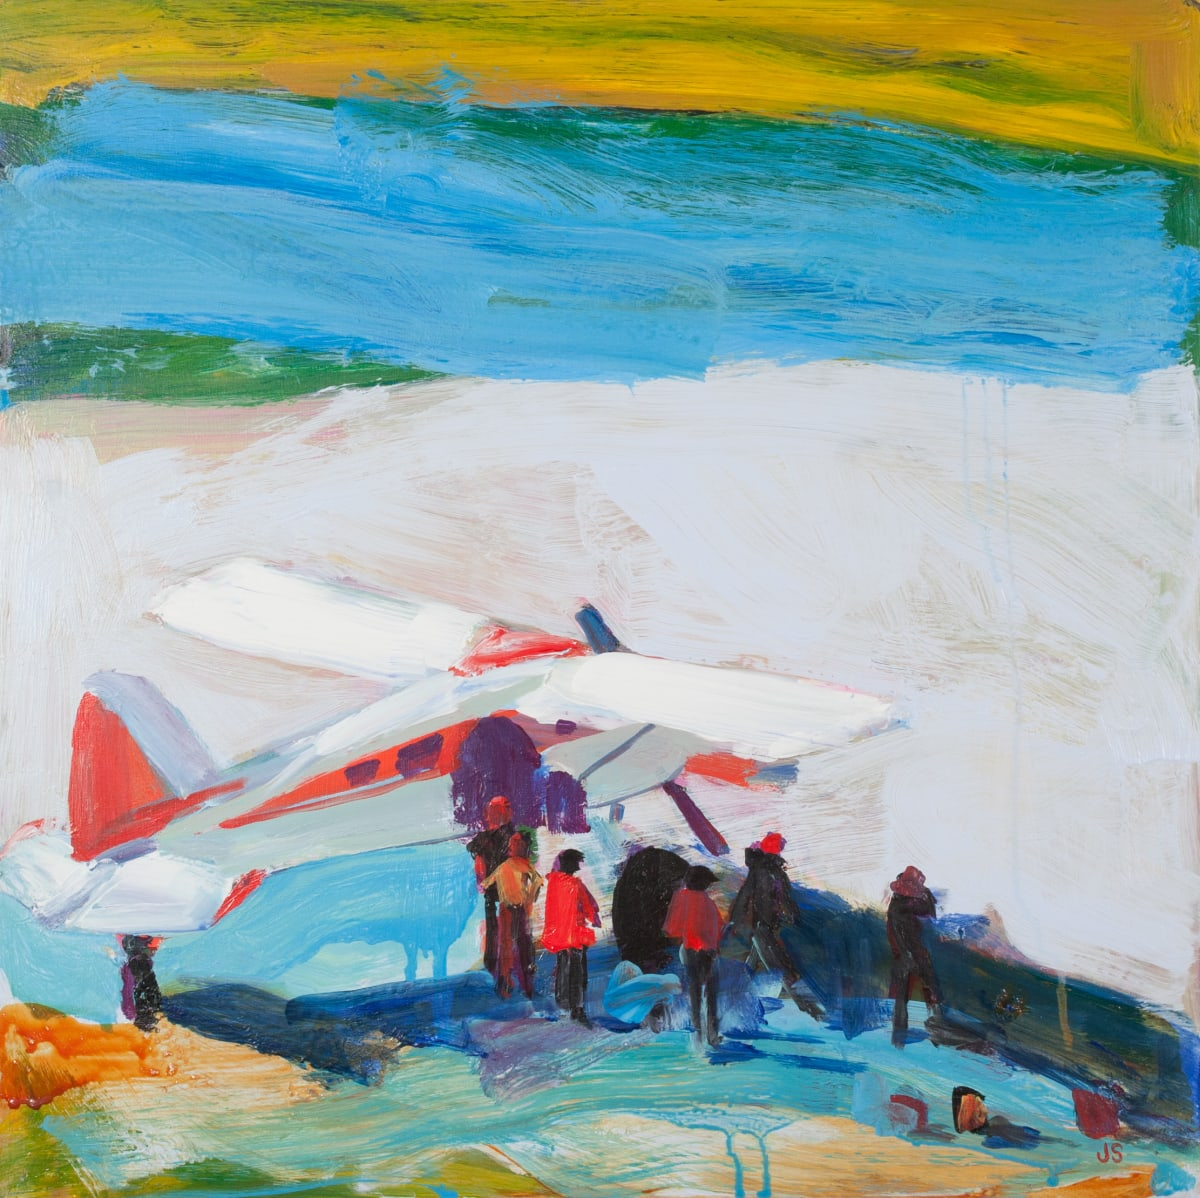 The Airplane Painting by Jessica Singerman